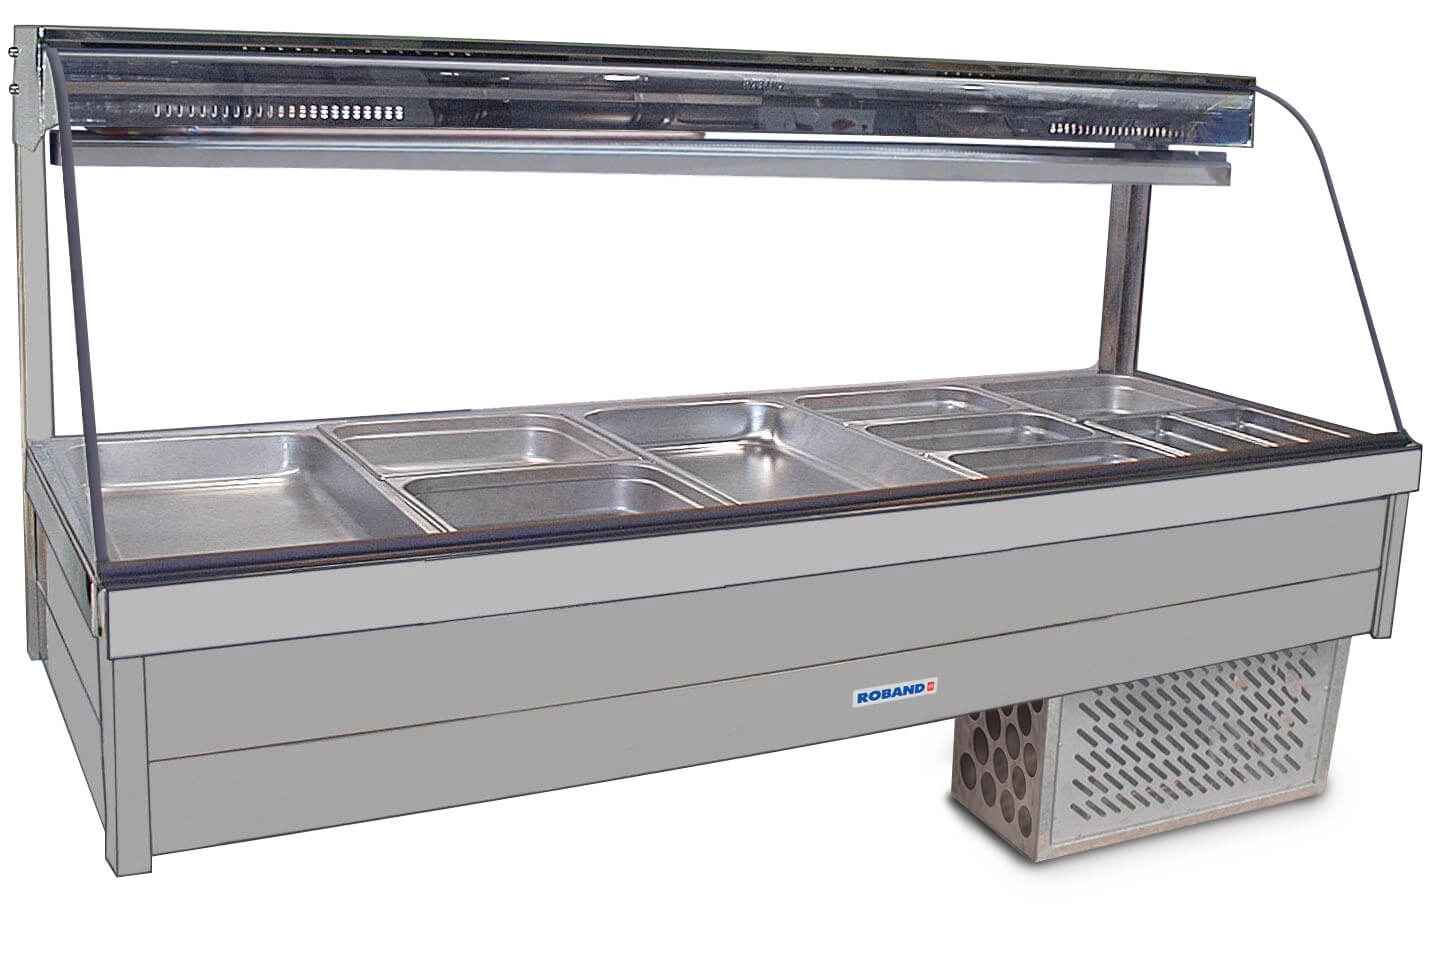 Roband CRX25RD Curved Glass Refrigerated Display Bar, 10 pans